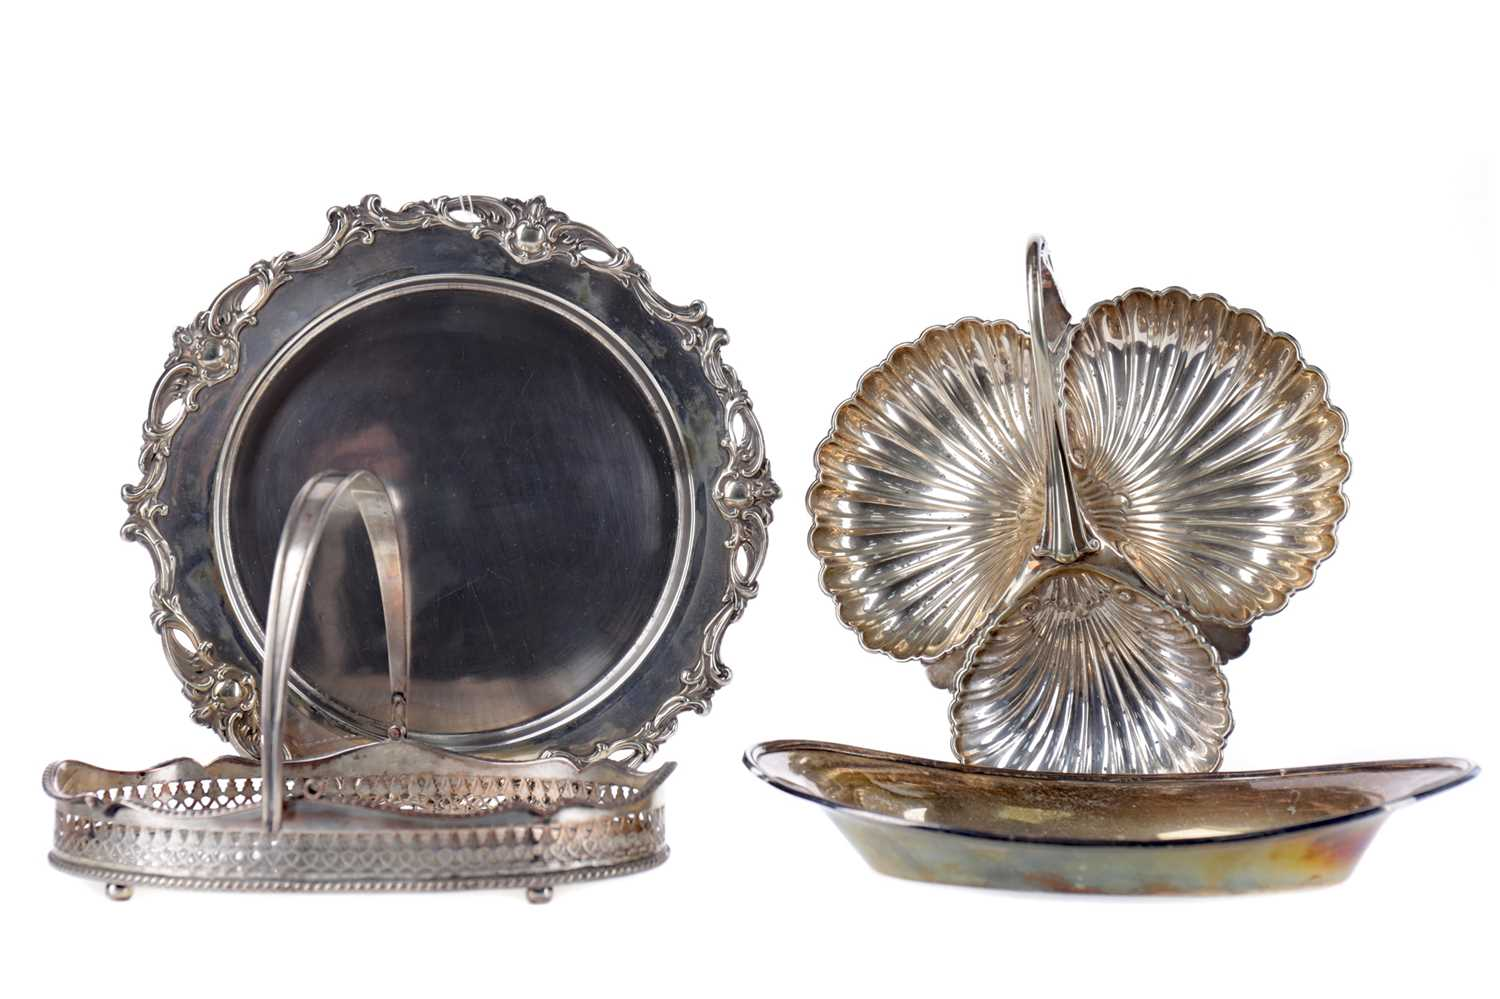 Lot 87 - AN EARLY 20TH CENTURY SILVER PLATED SERVING DISH, ALONG WITH A HOT PLATE, COMPORT AND BASKET